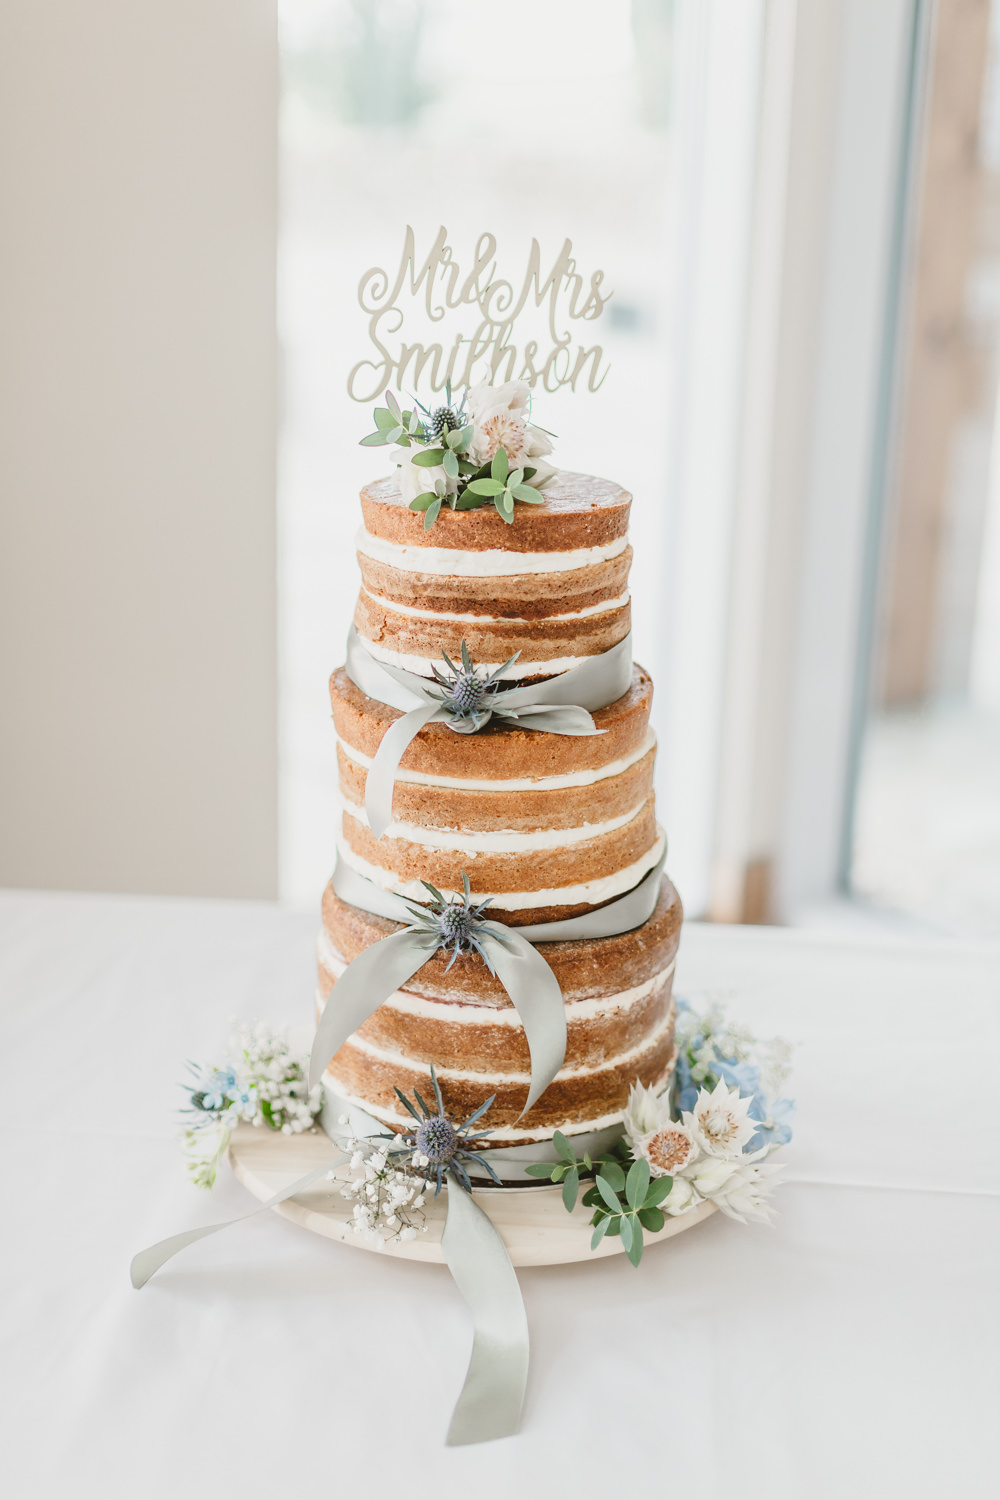 Naked Cake Sponge Layer Buttercream Flowers Personalied Name Topper GG's Yard Wedding Amy Lou Photography